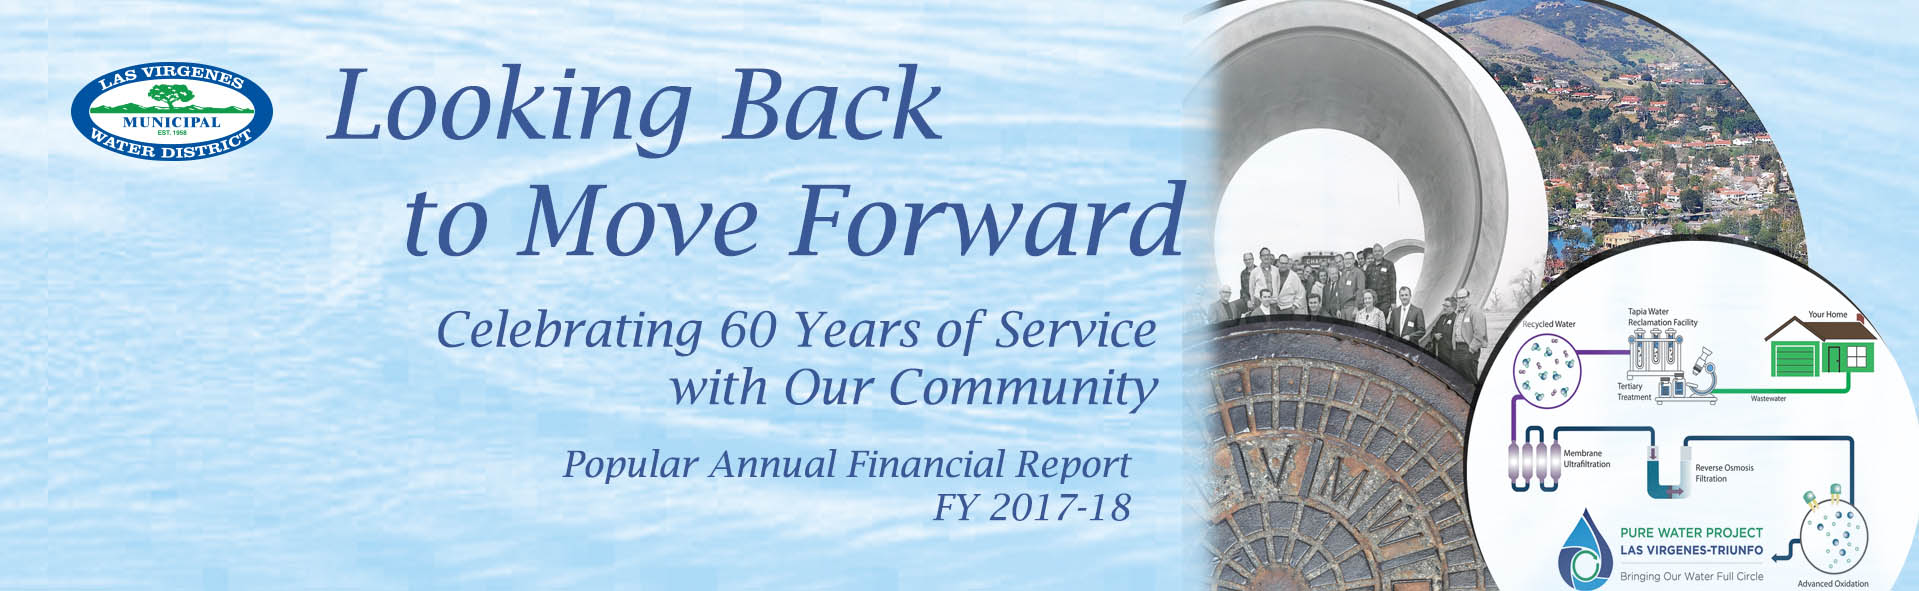 Popular Annual Financial Report Cover